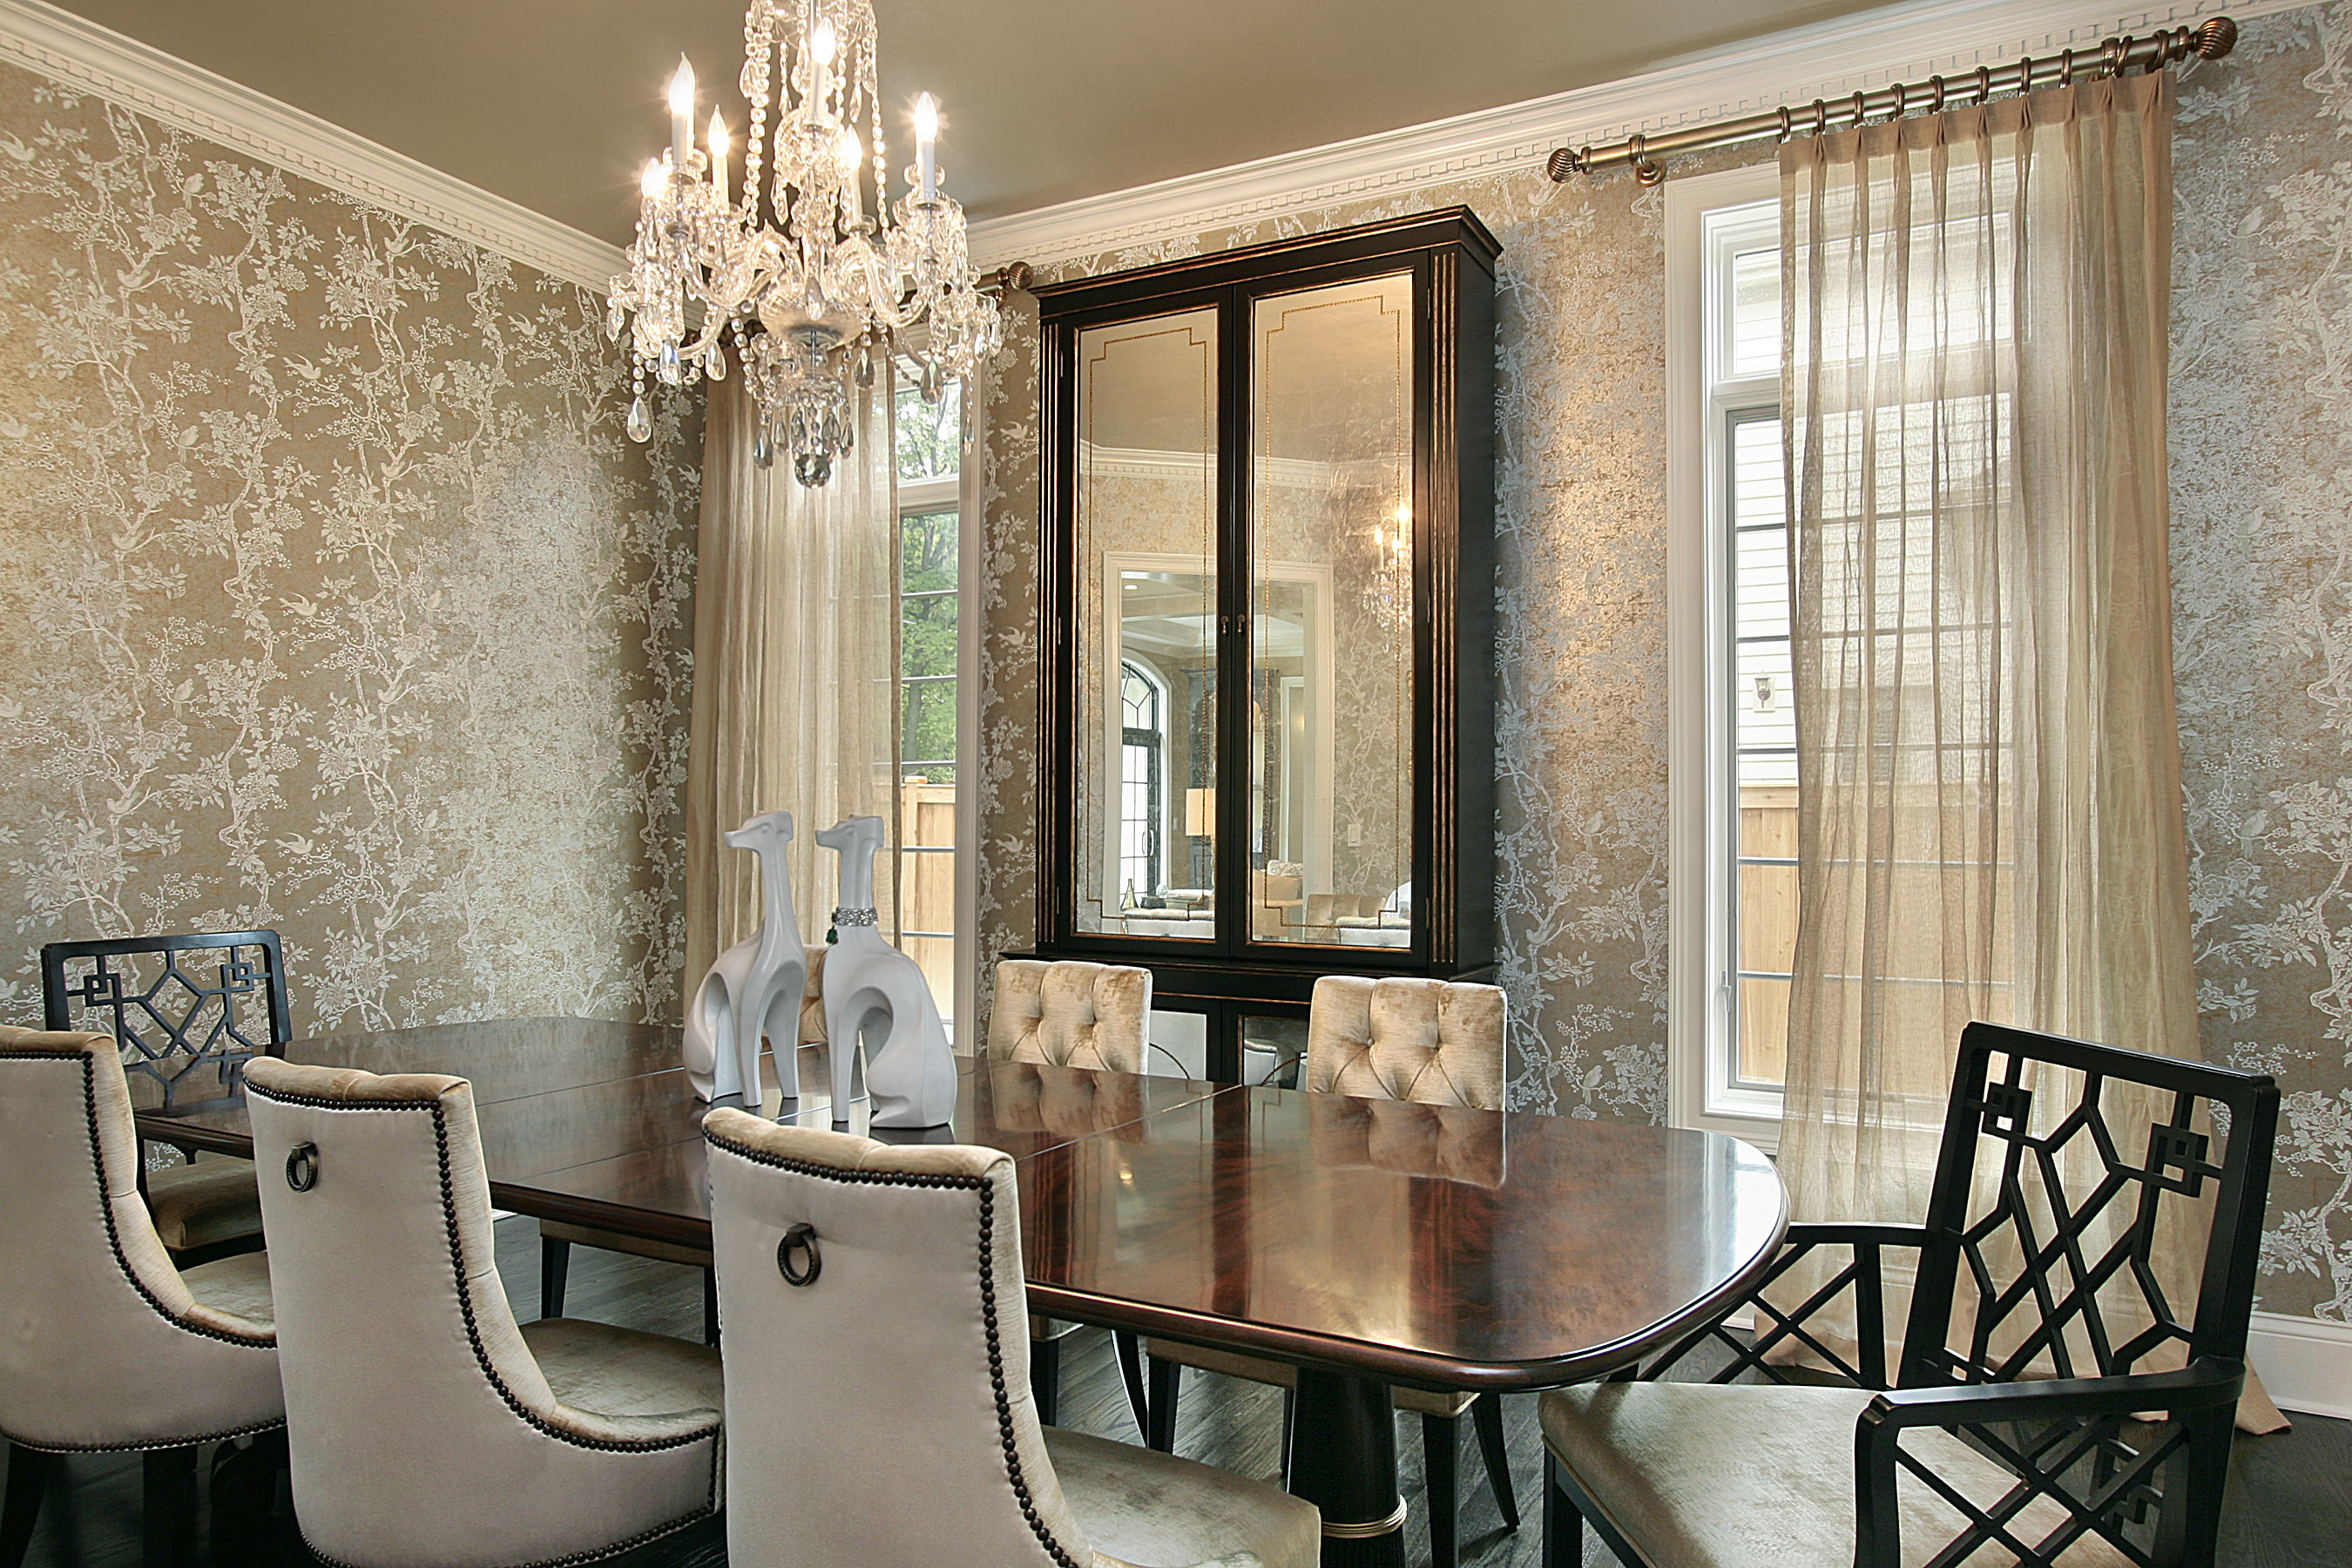 Dining room in luxury home with gold walls